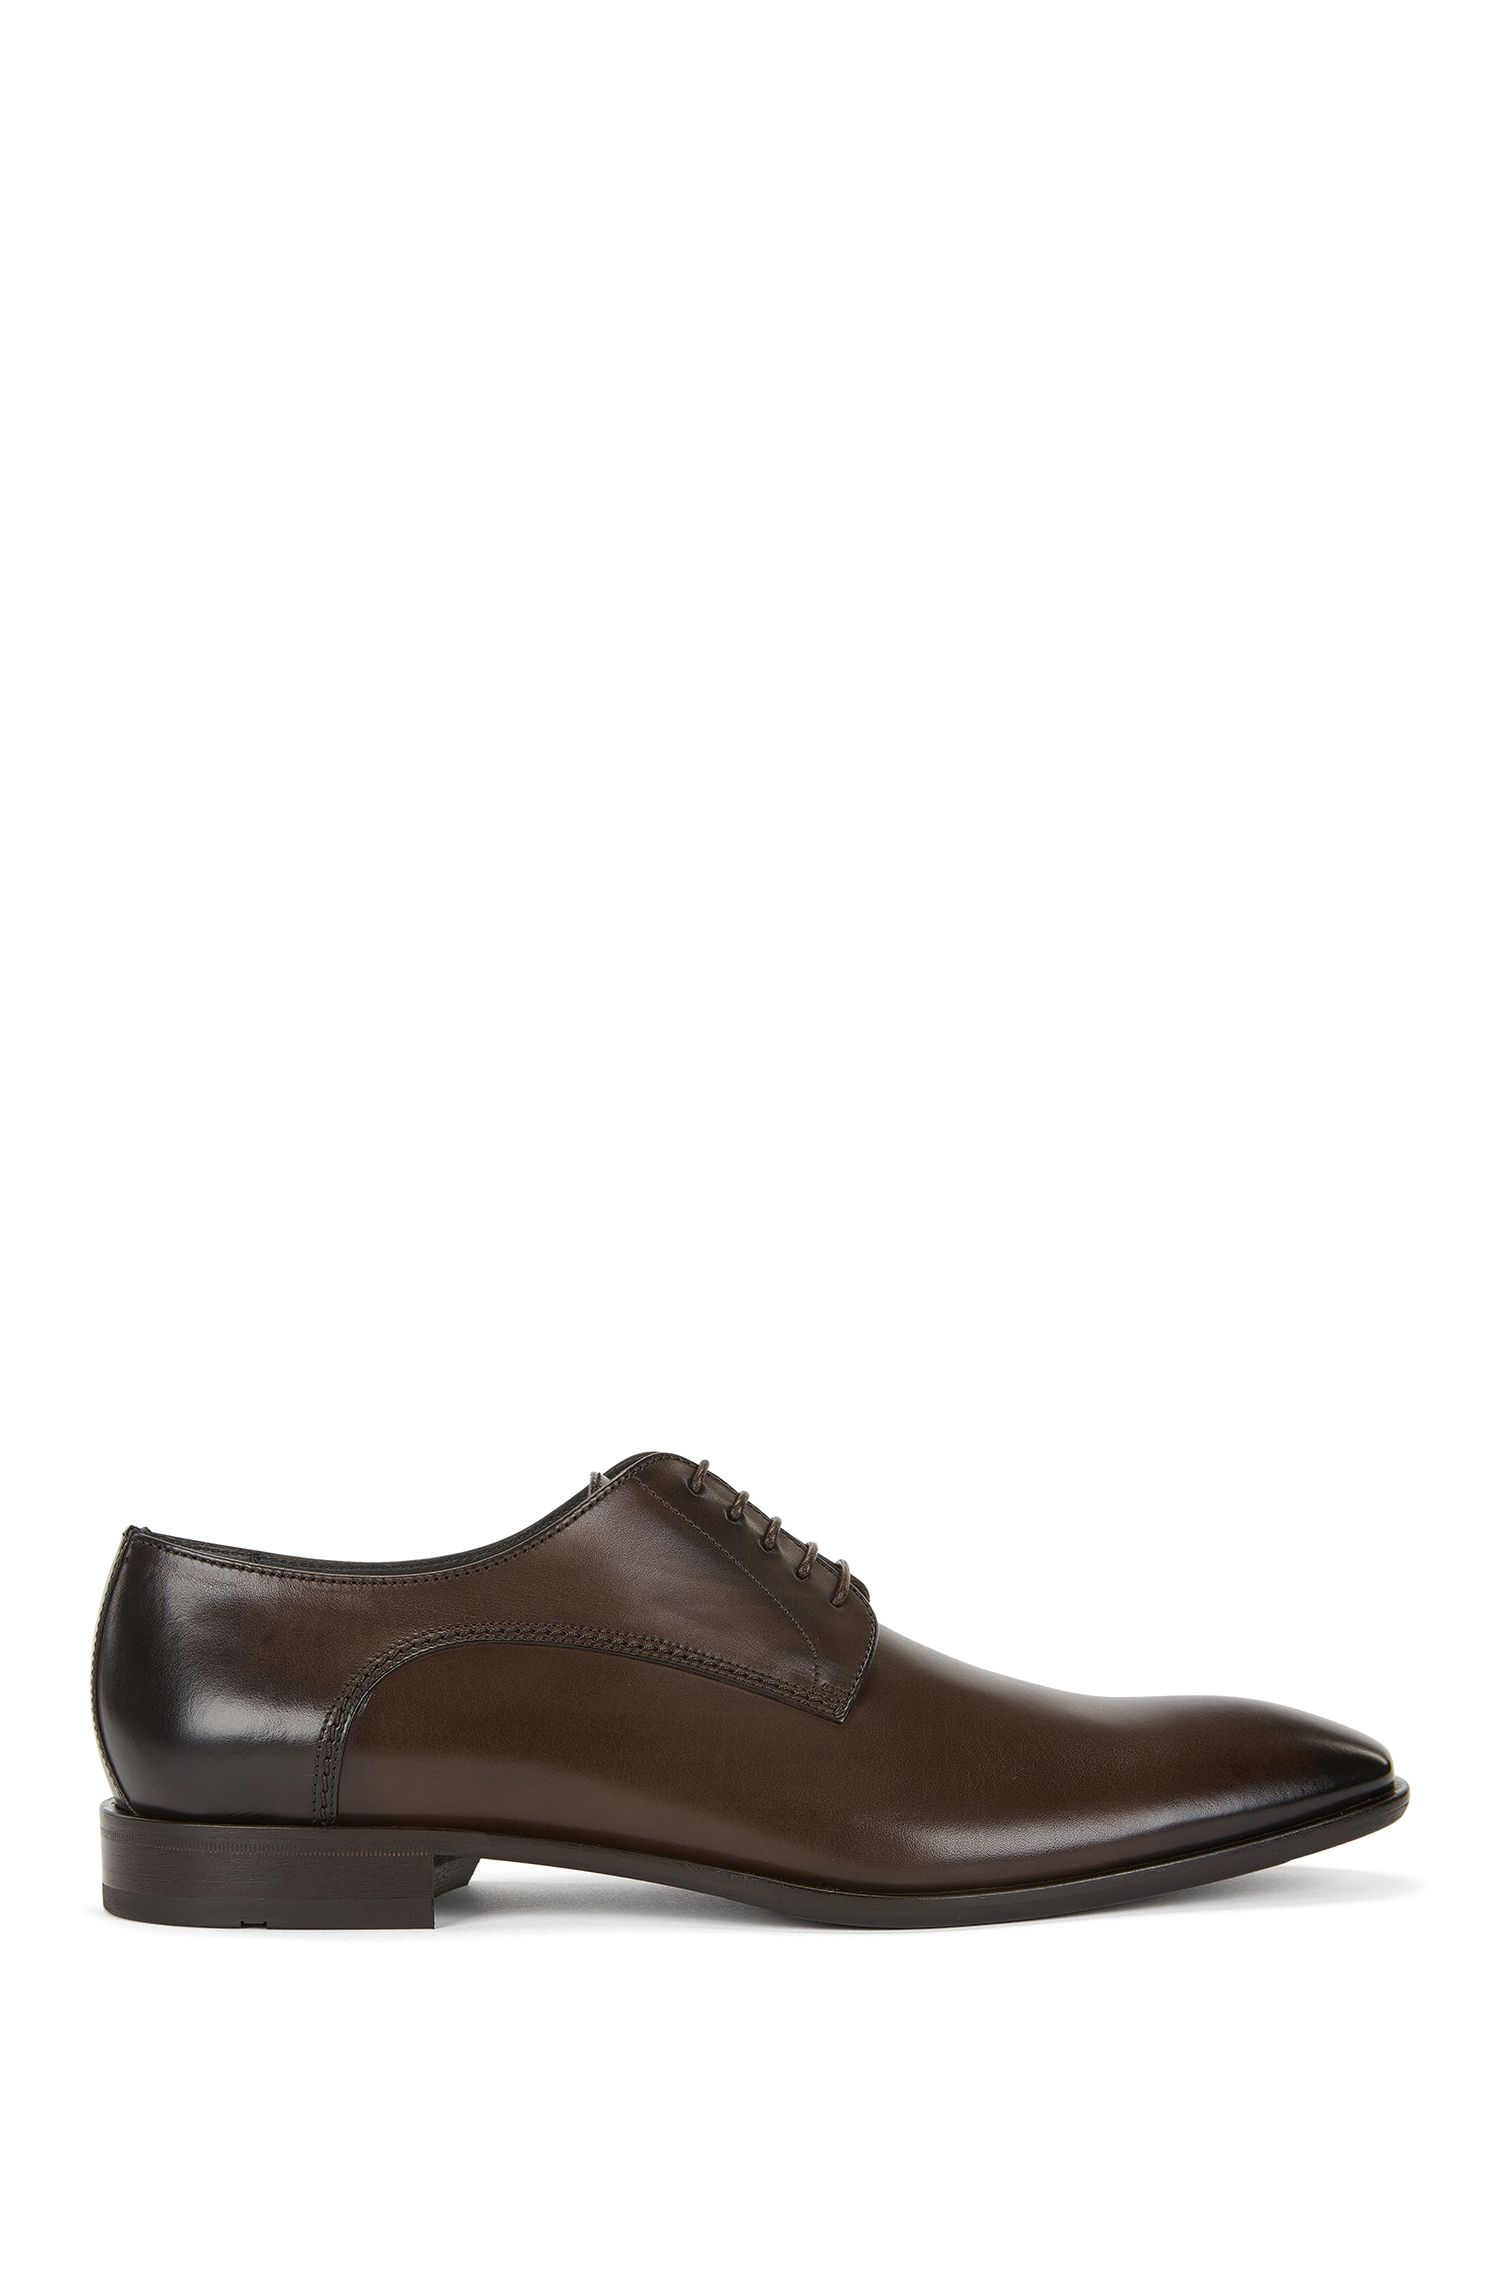 Leather Derby Dress Shoe | Carmons, Dark Brown